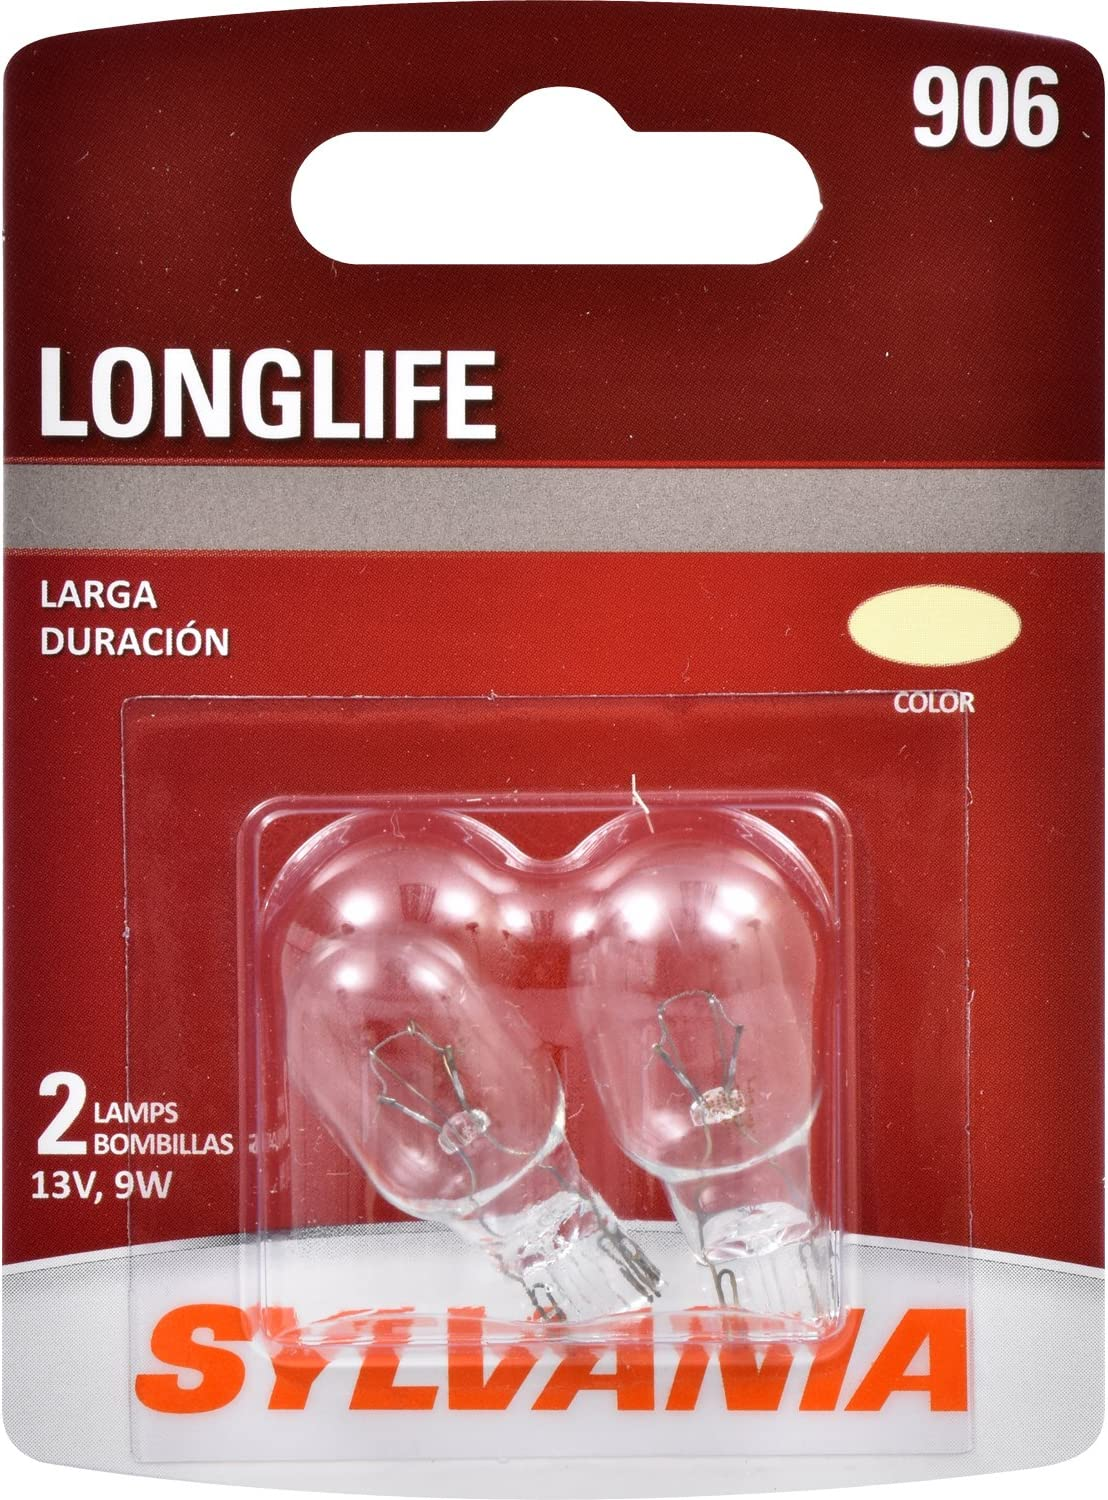 SYLVANIA - 906 Long Life Miniature - Bulb, Ideal for Interior Lighting – Cargo, License Plate and More. (Contains 2 Bulbs)